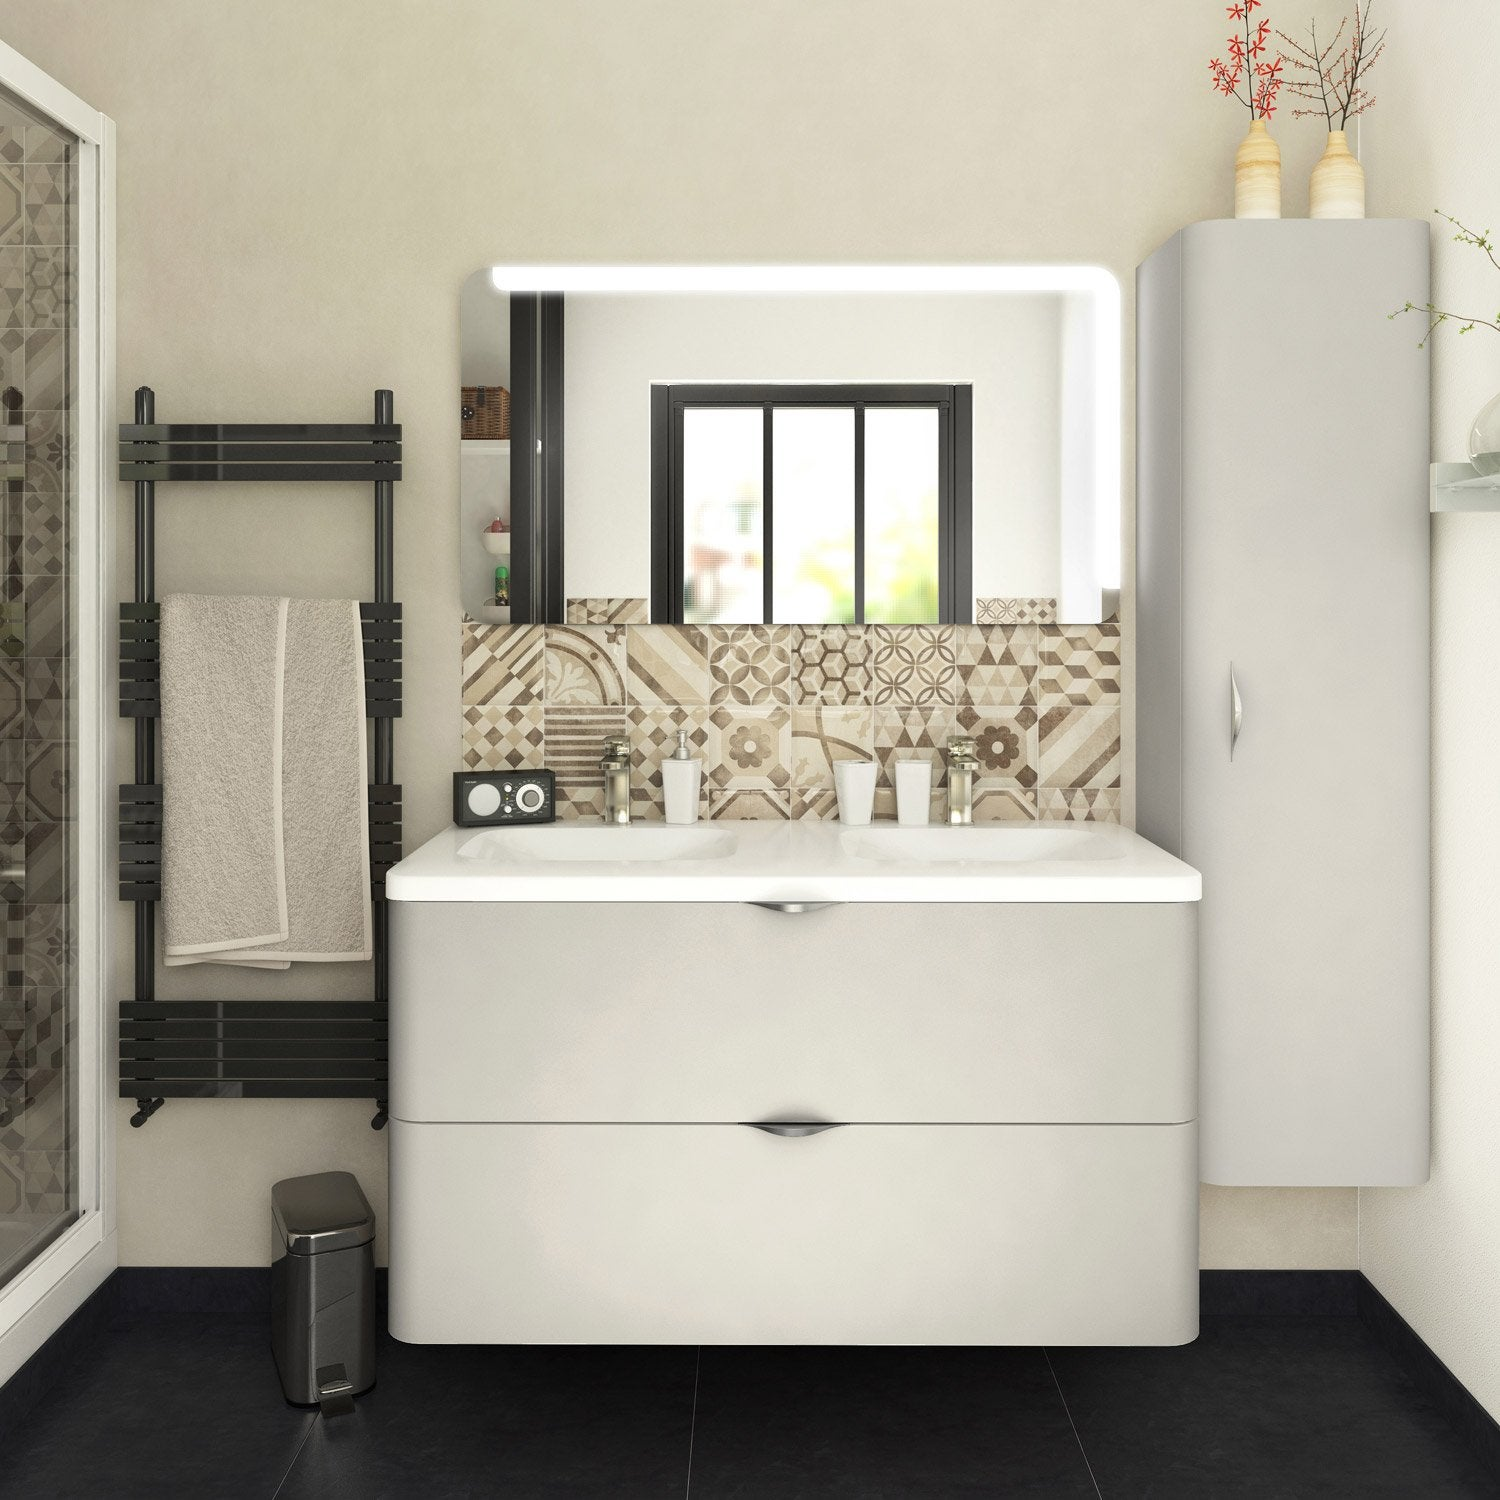 meuble de salle de bains plus de 120 blanc beige naturels neo shine leroy merlin. Black Bedroom Furniture Sets. Home Design Ideas